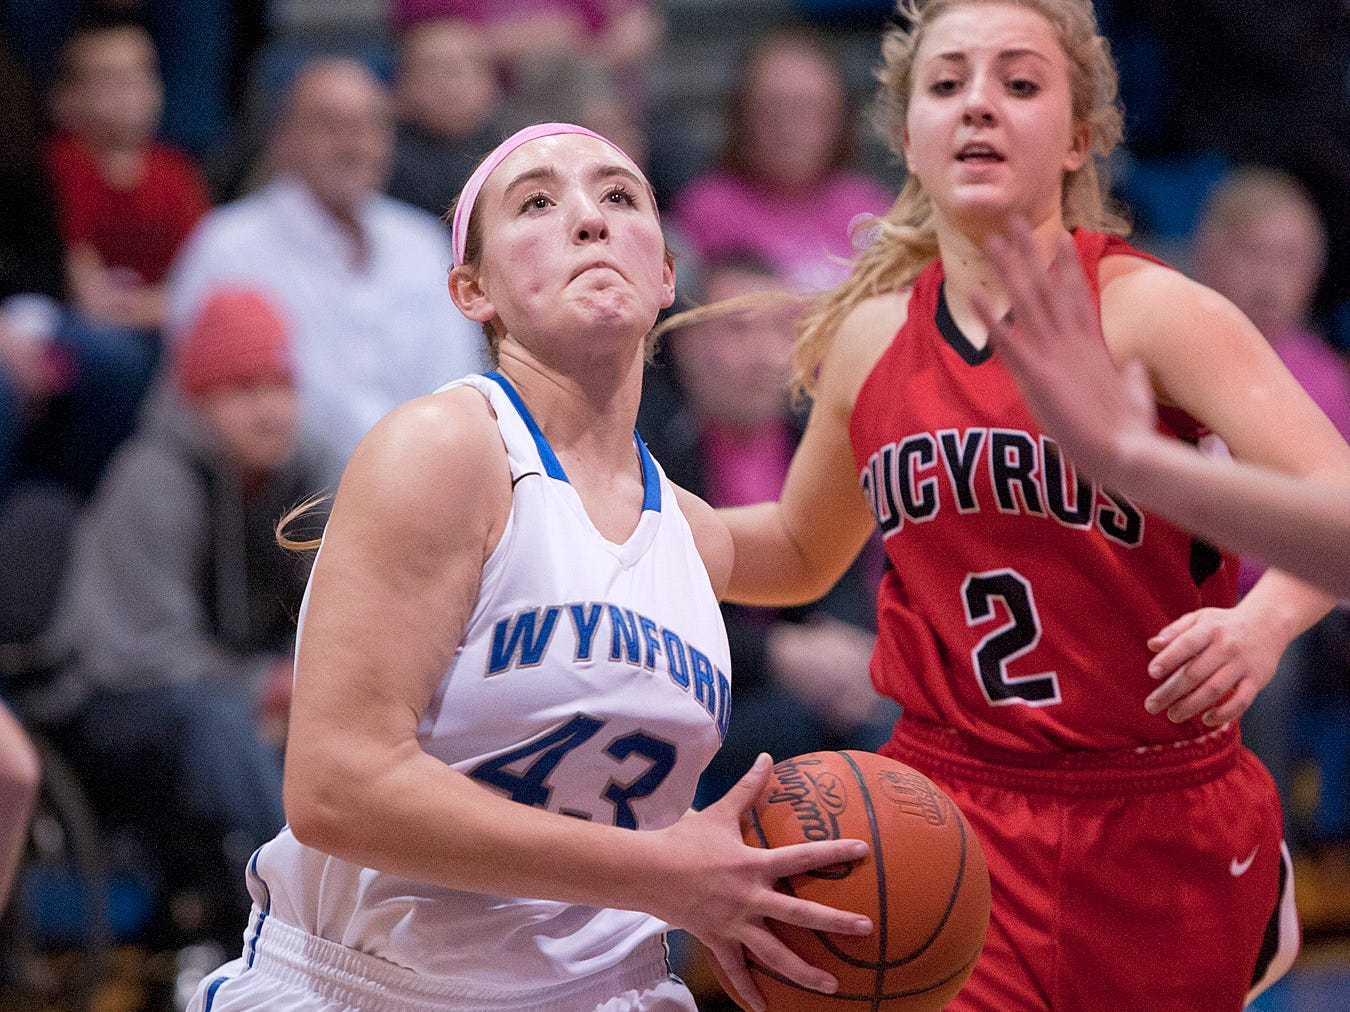 Wynford's Gretchen Harris drives to the hoop Tuesday night.